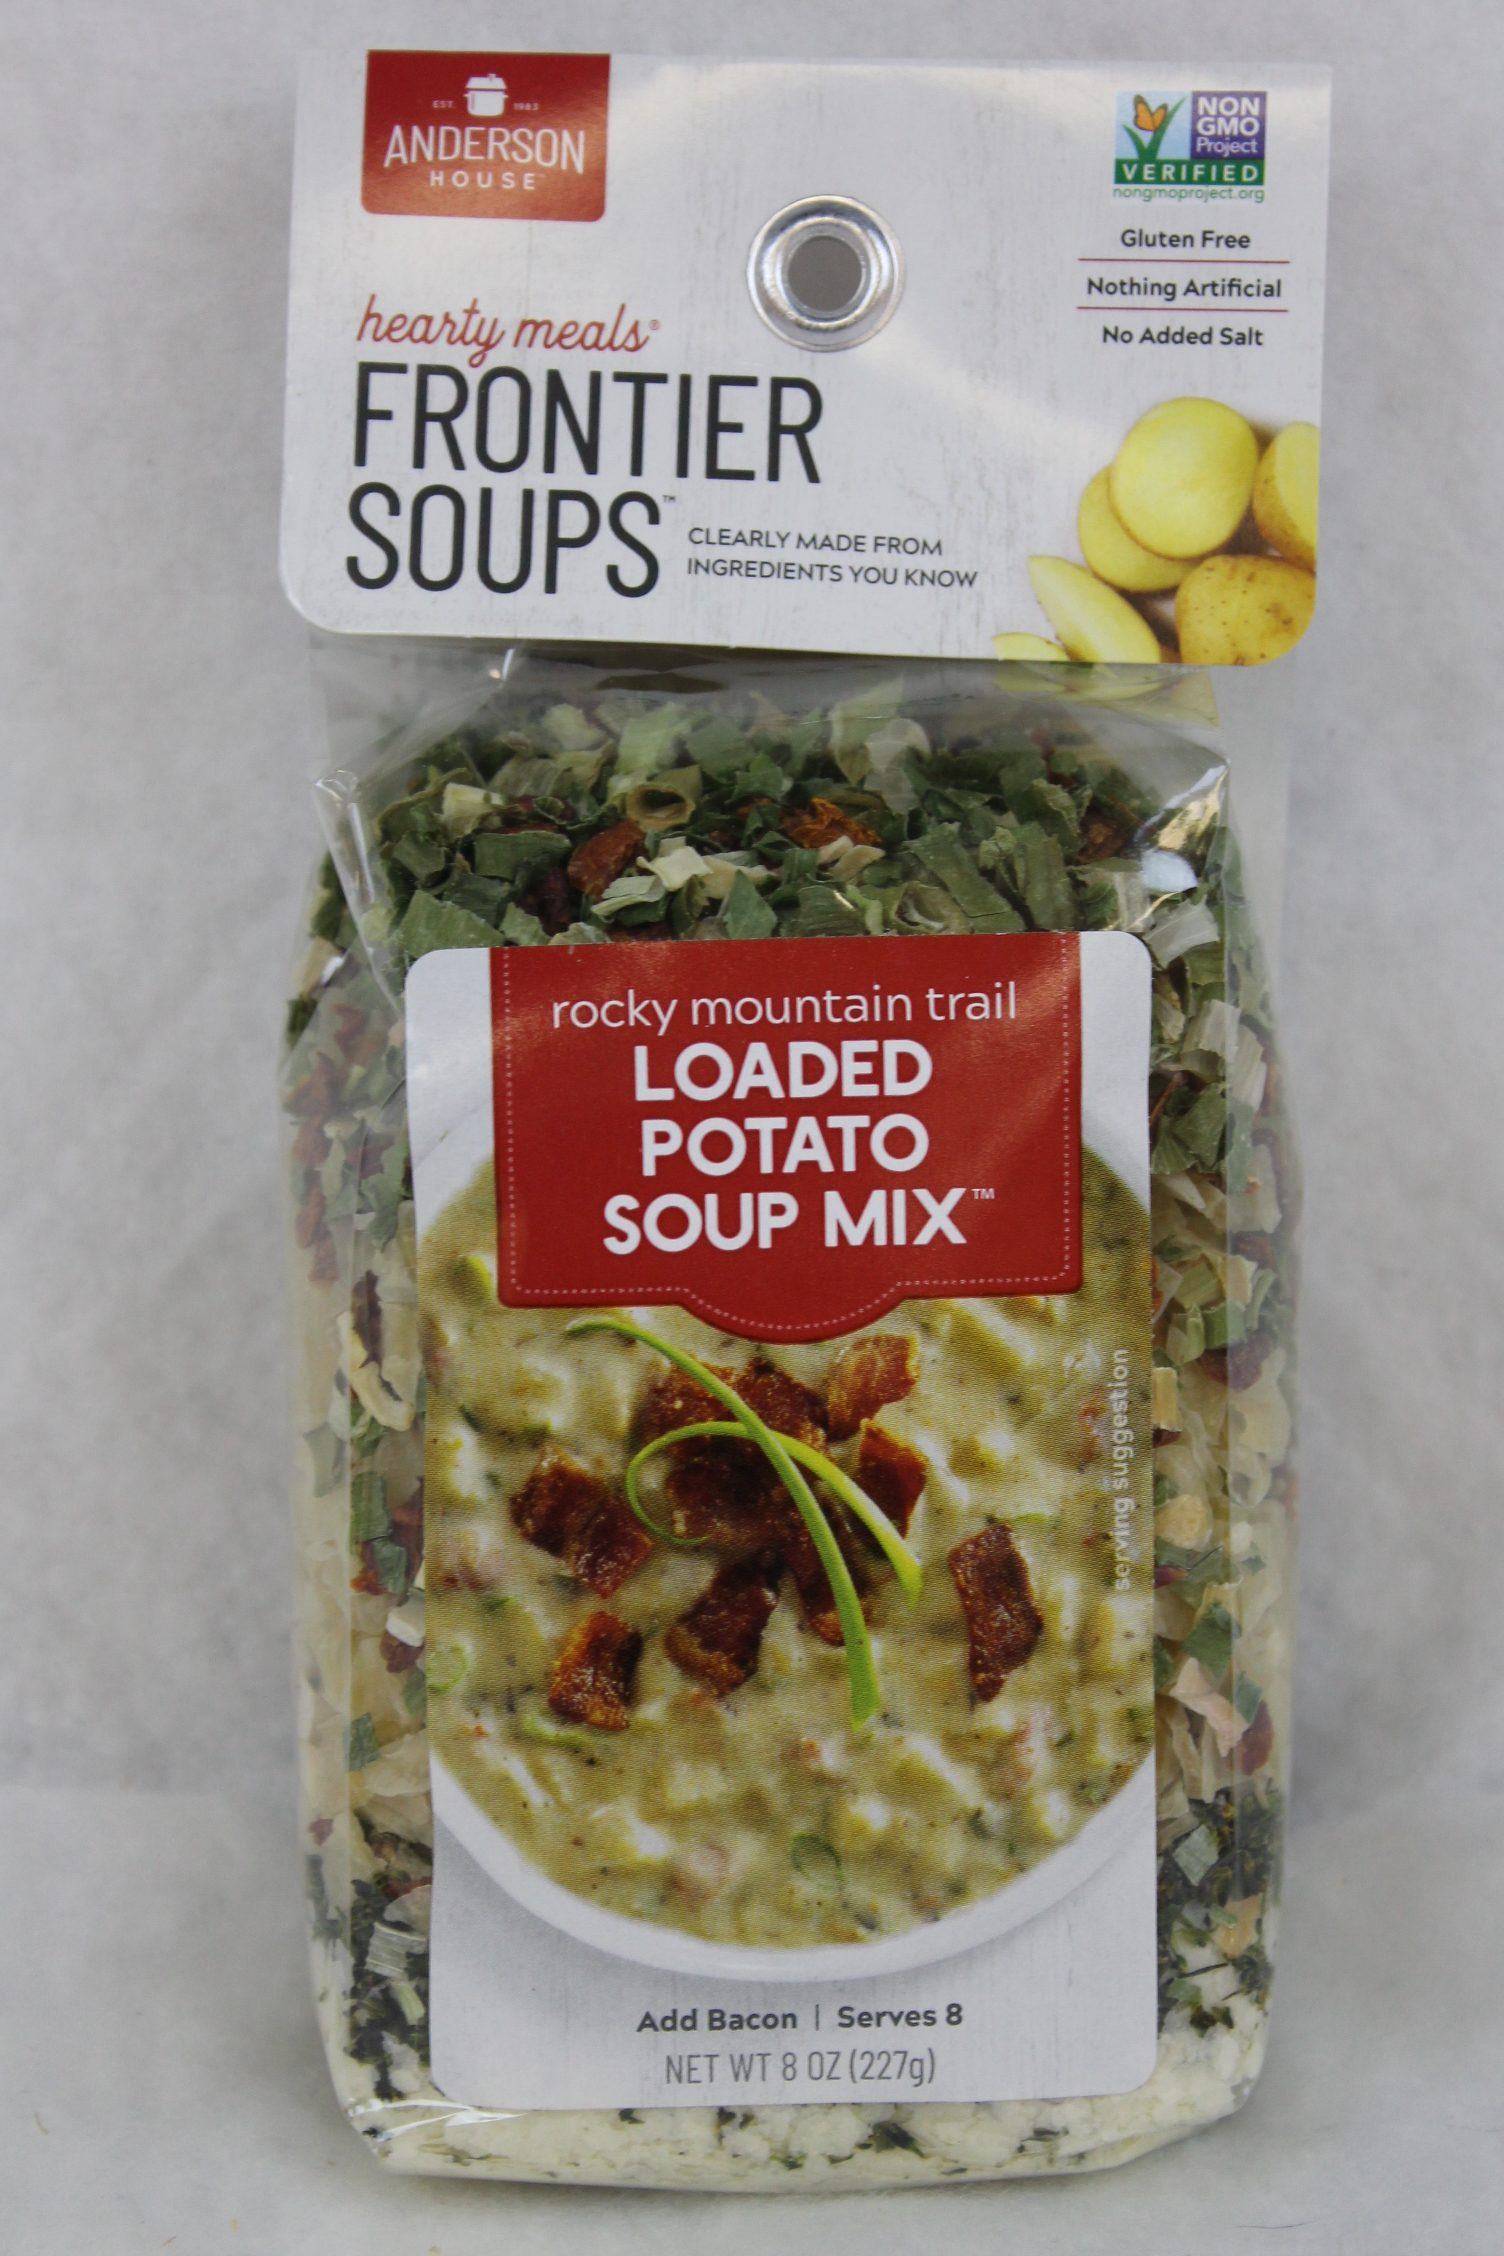 loaded potato soup mix product image